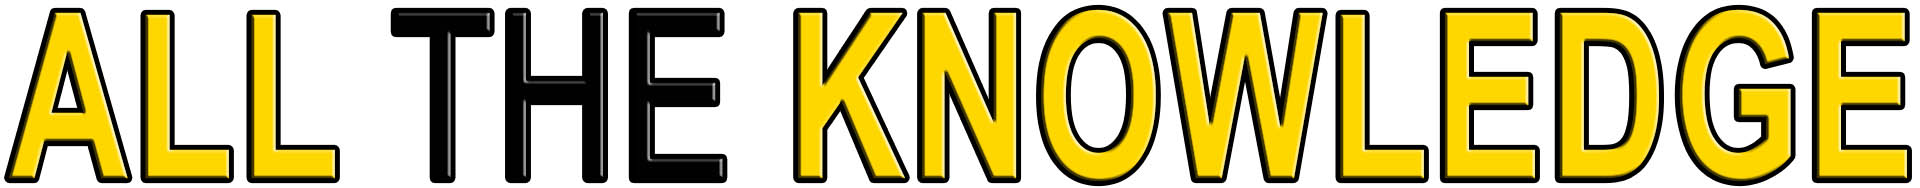 ALL THE KNOWLEDGE